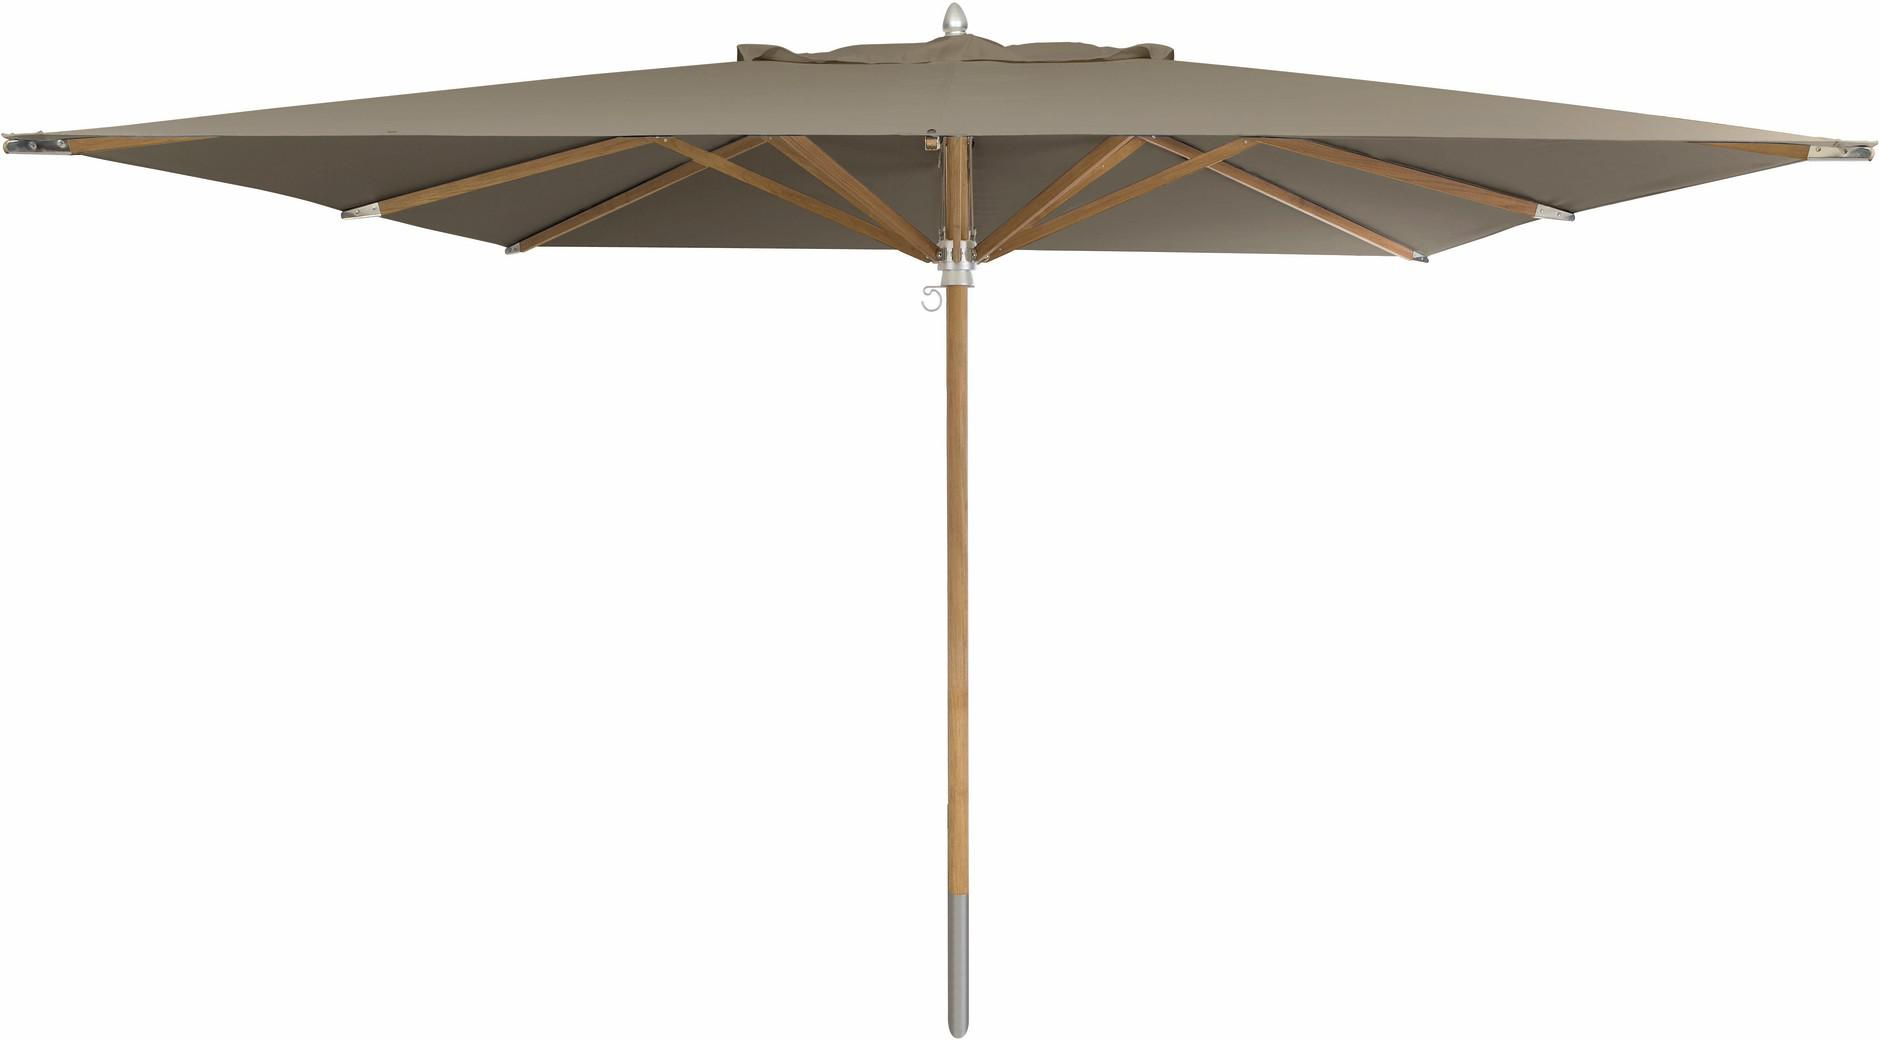 Umbrella central pole teak 350*350 taupe